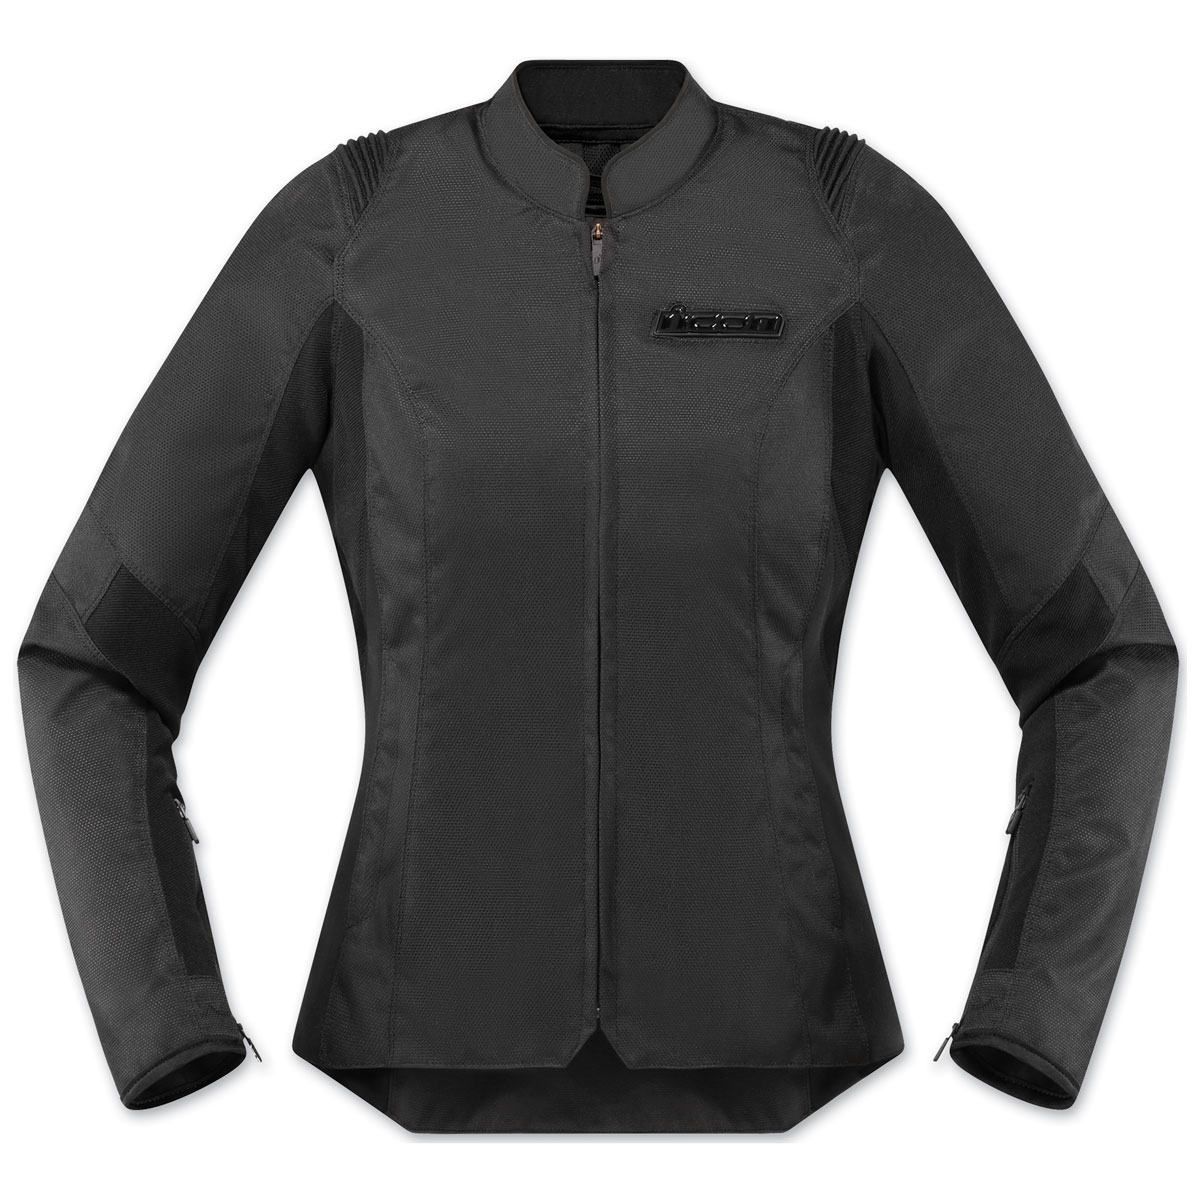 ICON Women's Overlord SB2 Stealth Jacket